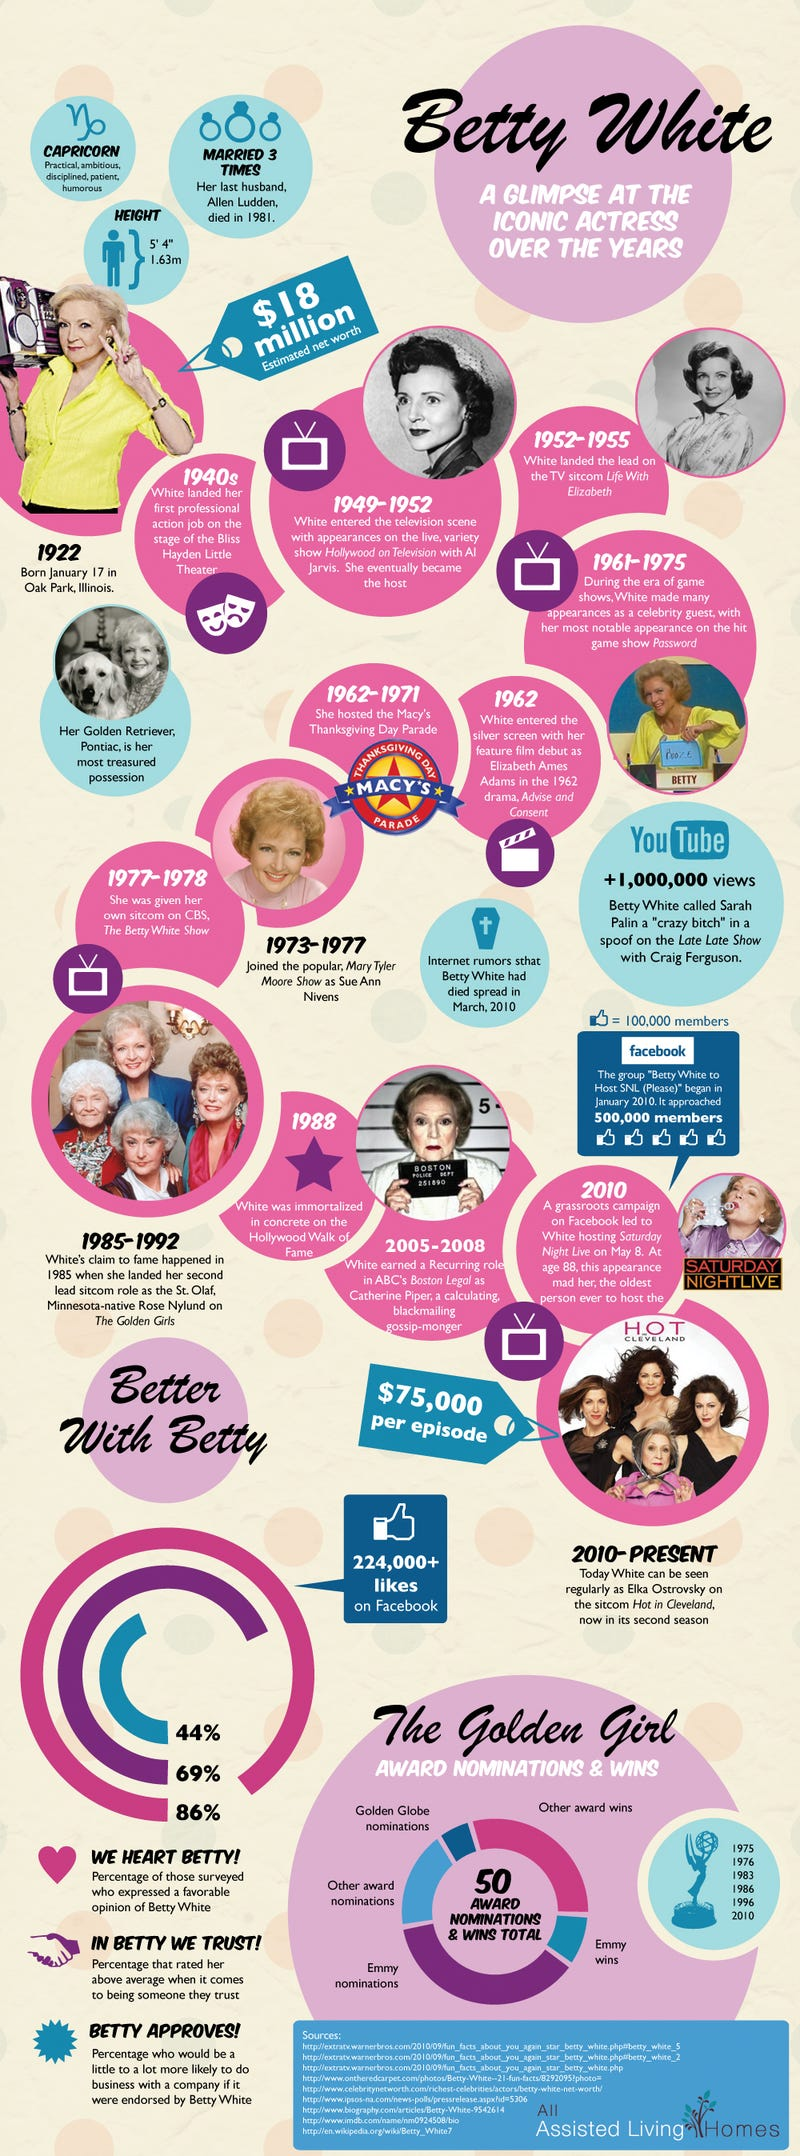 Betty White's Life, By The Numbers